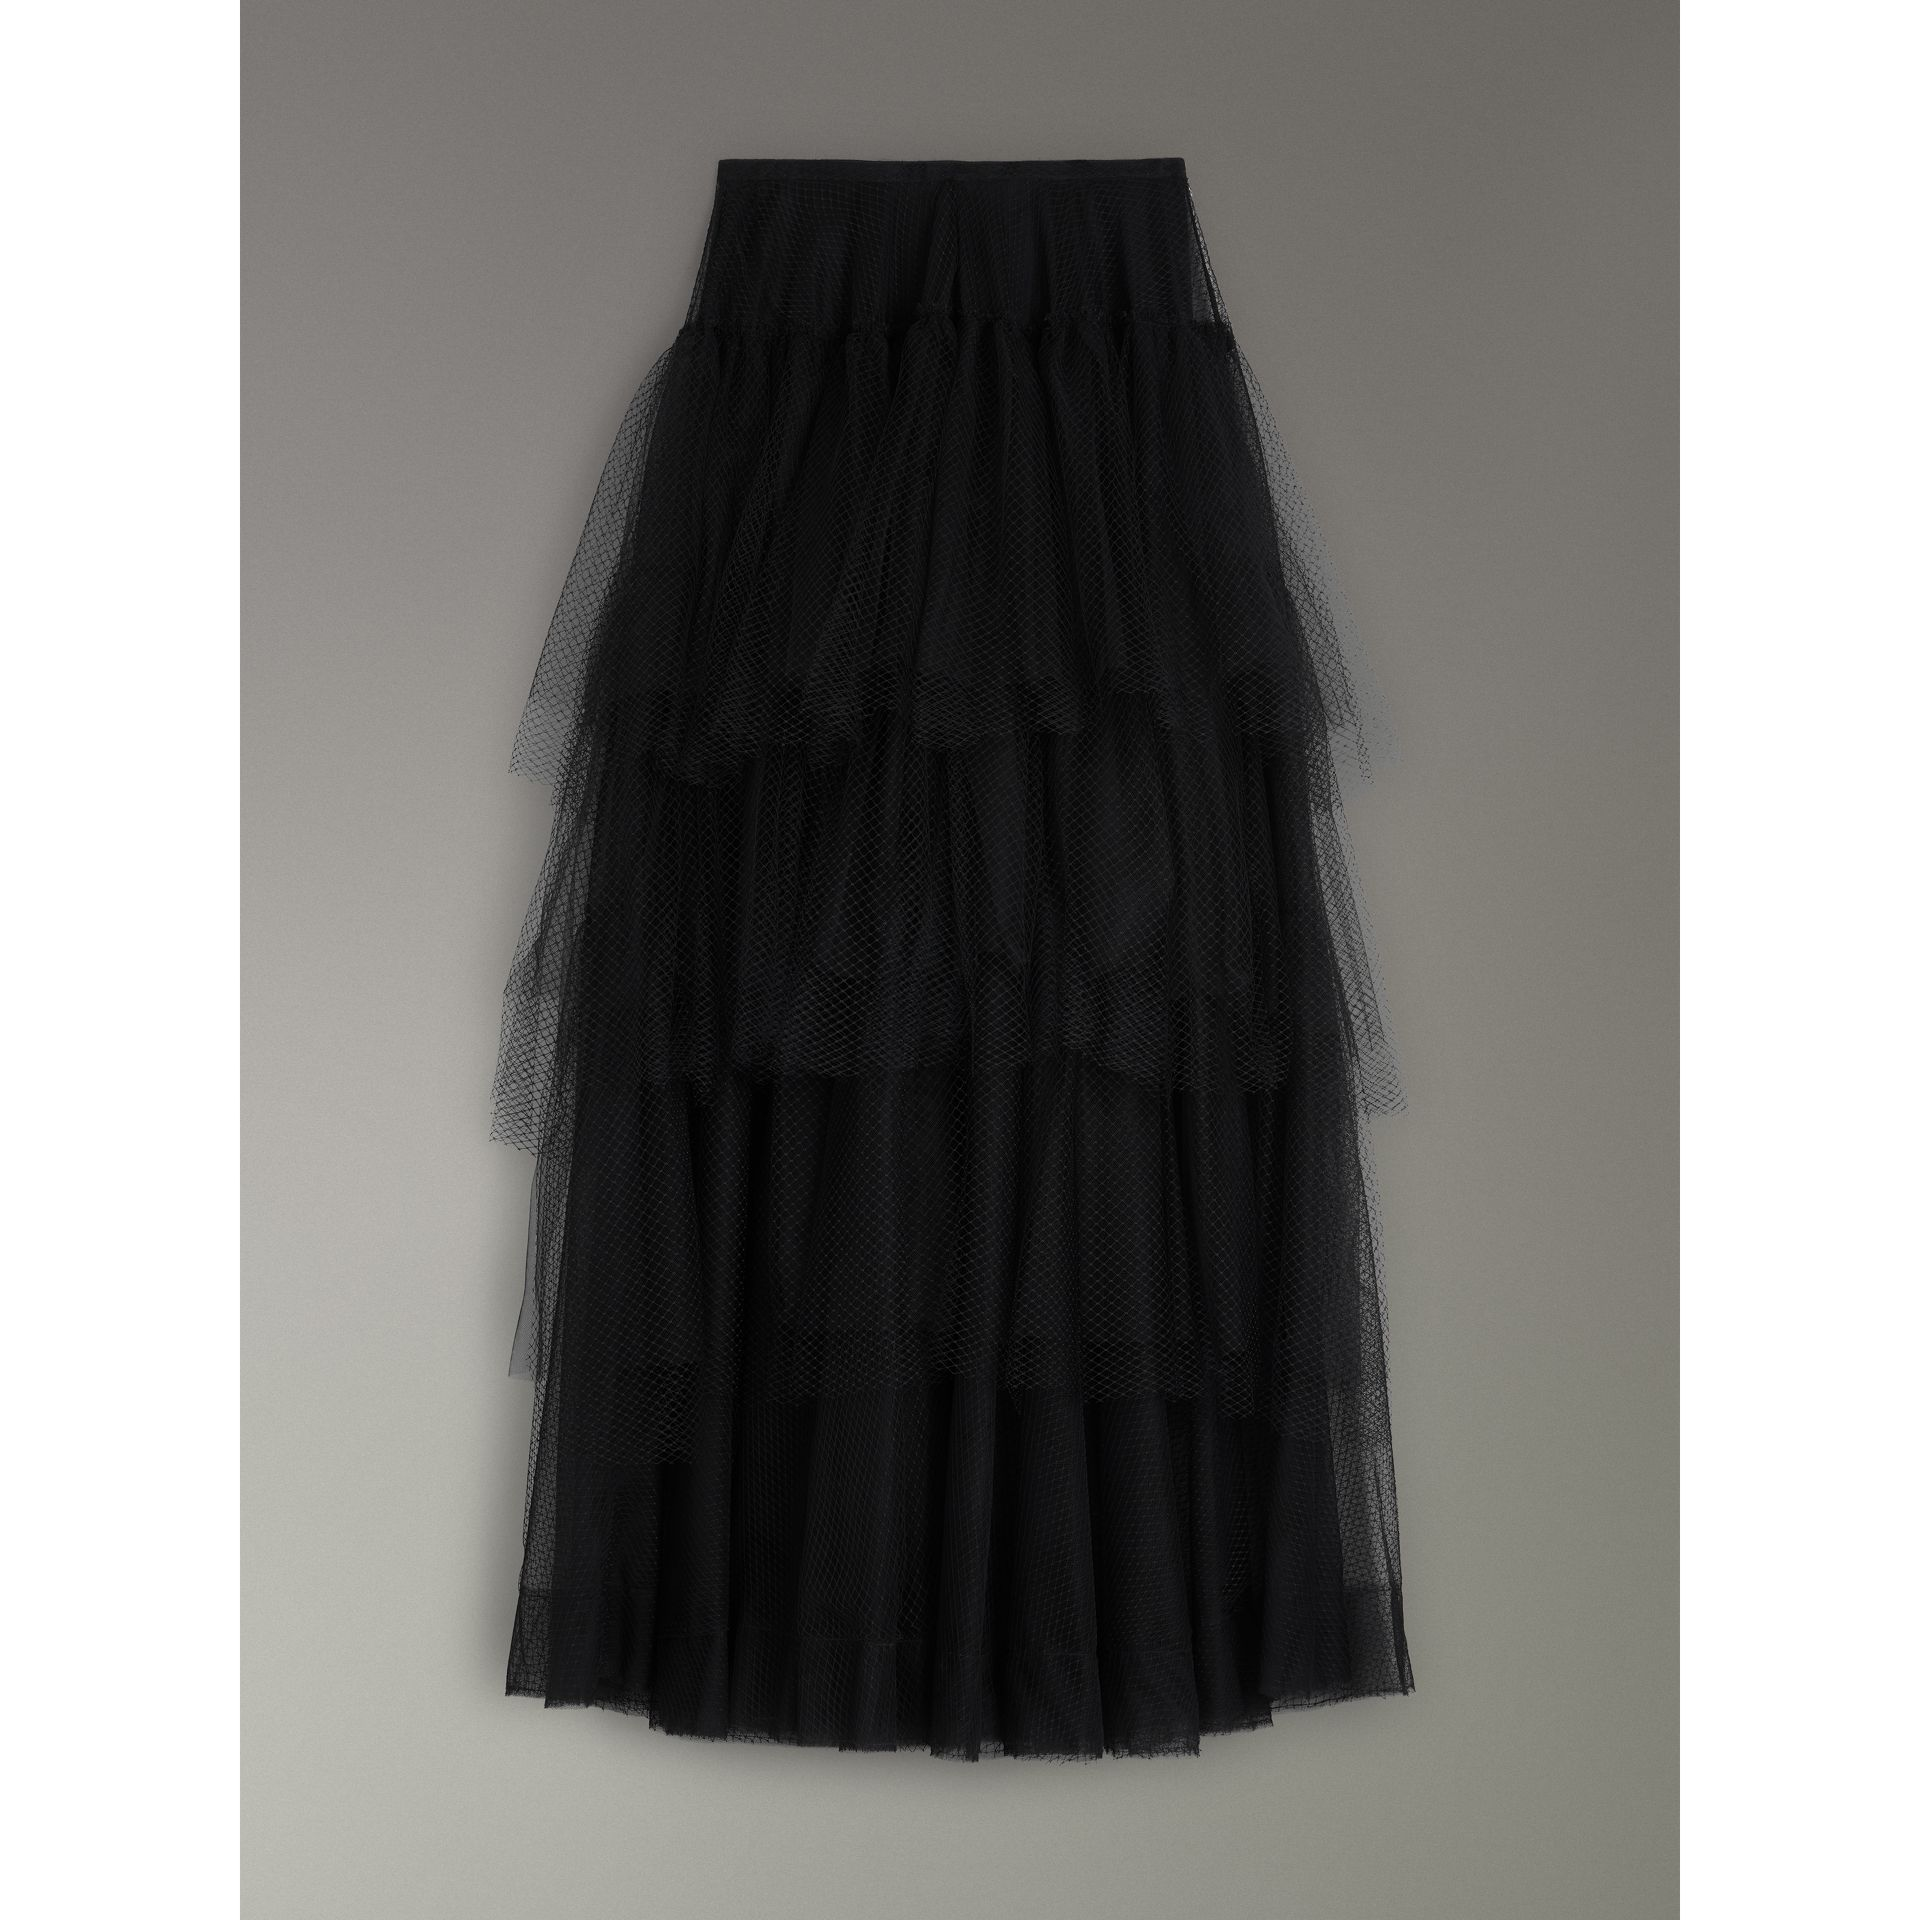 Tiered Open-net Tulle Skirt in Black - Women | Burberry - gallery image 3